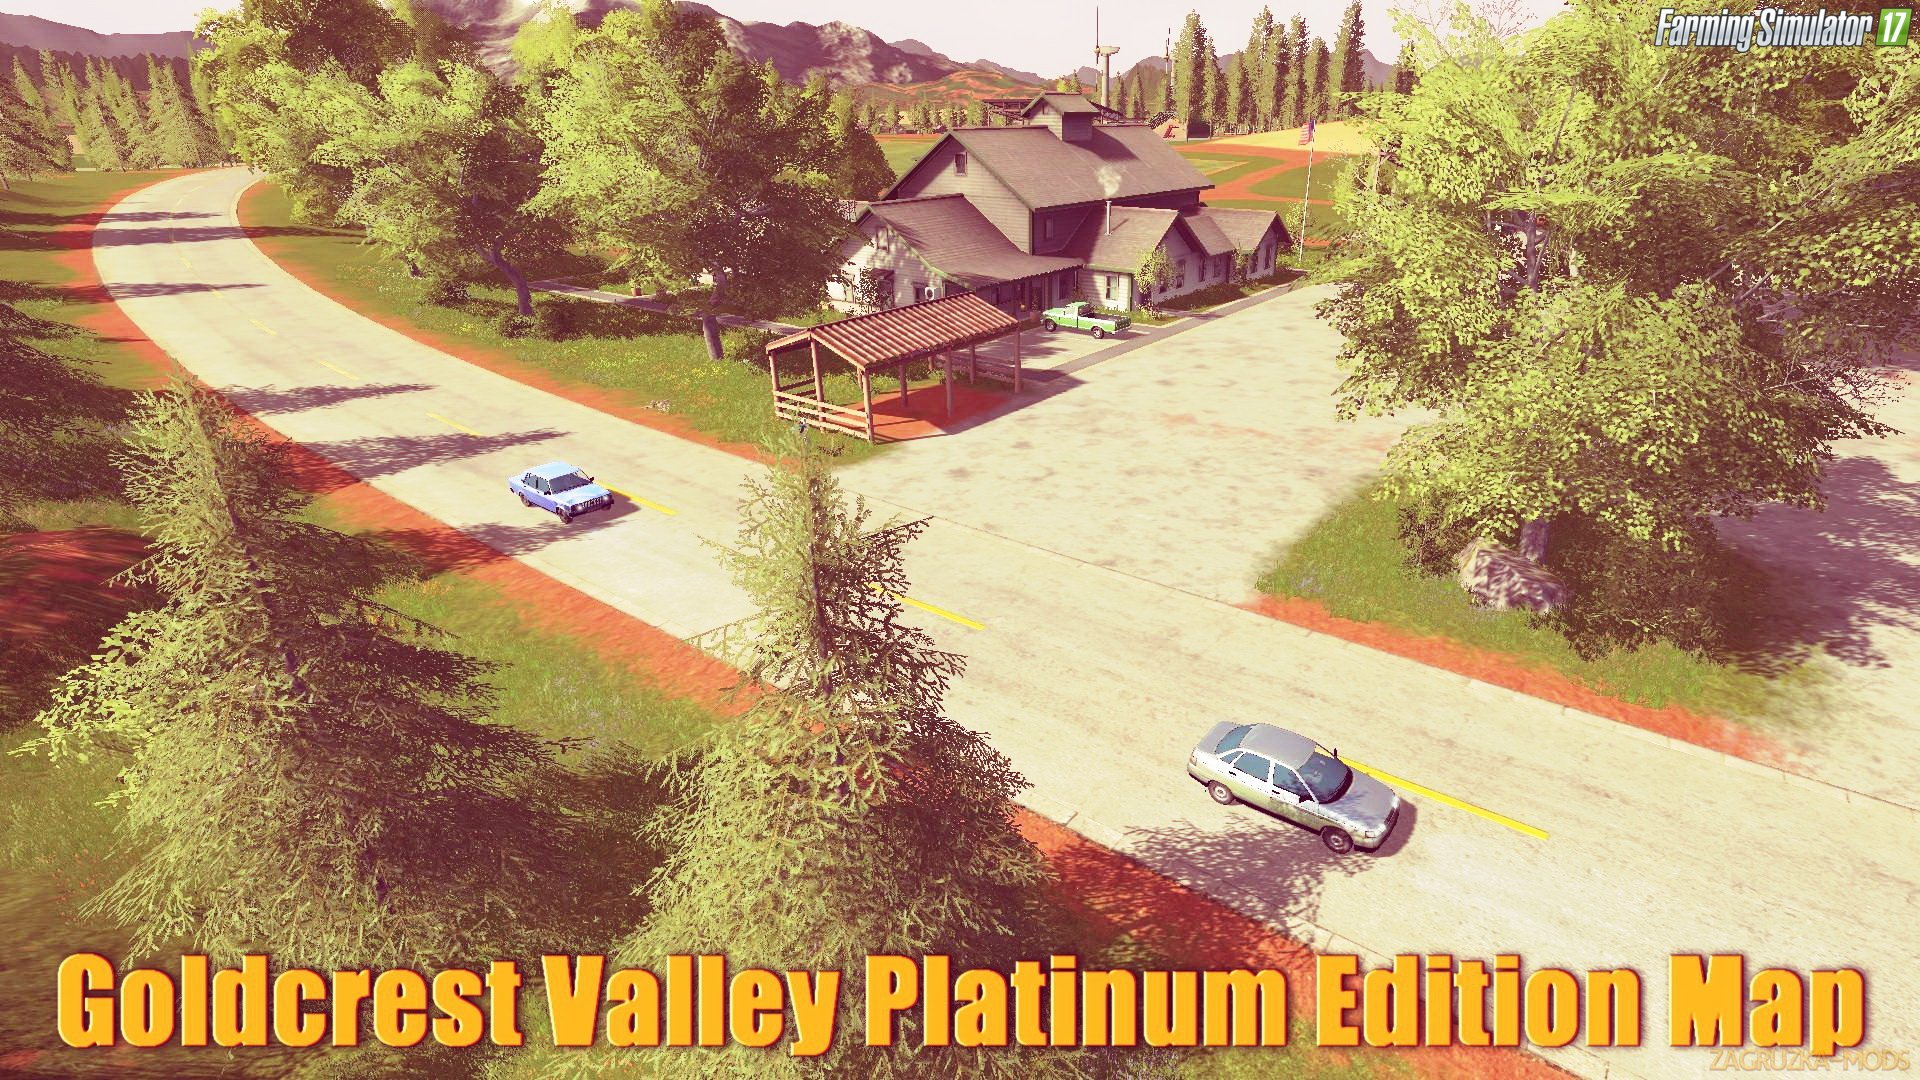 Goldcrest Valley Platinum Edition Map v1.0.0.2 for FS 17